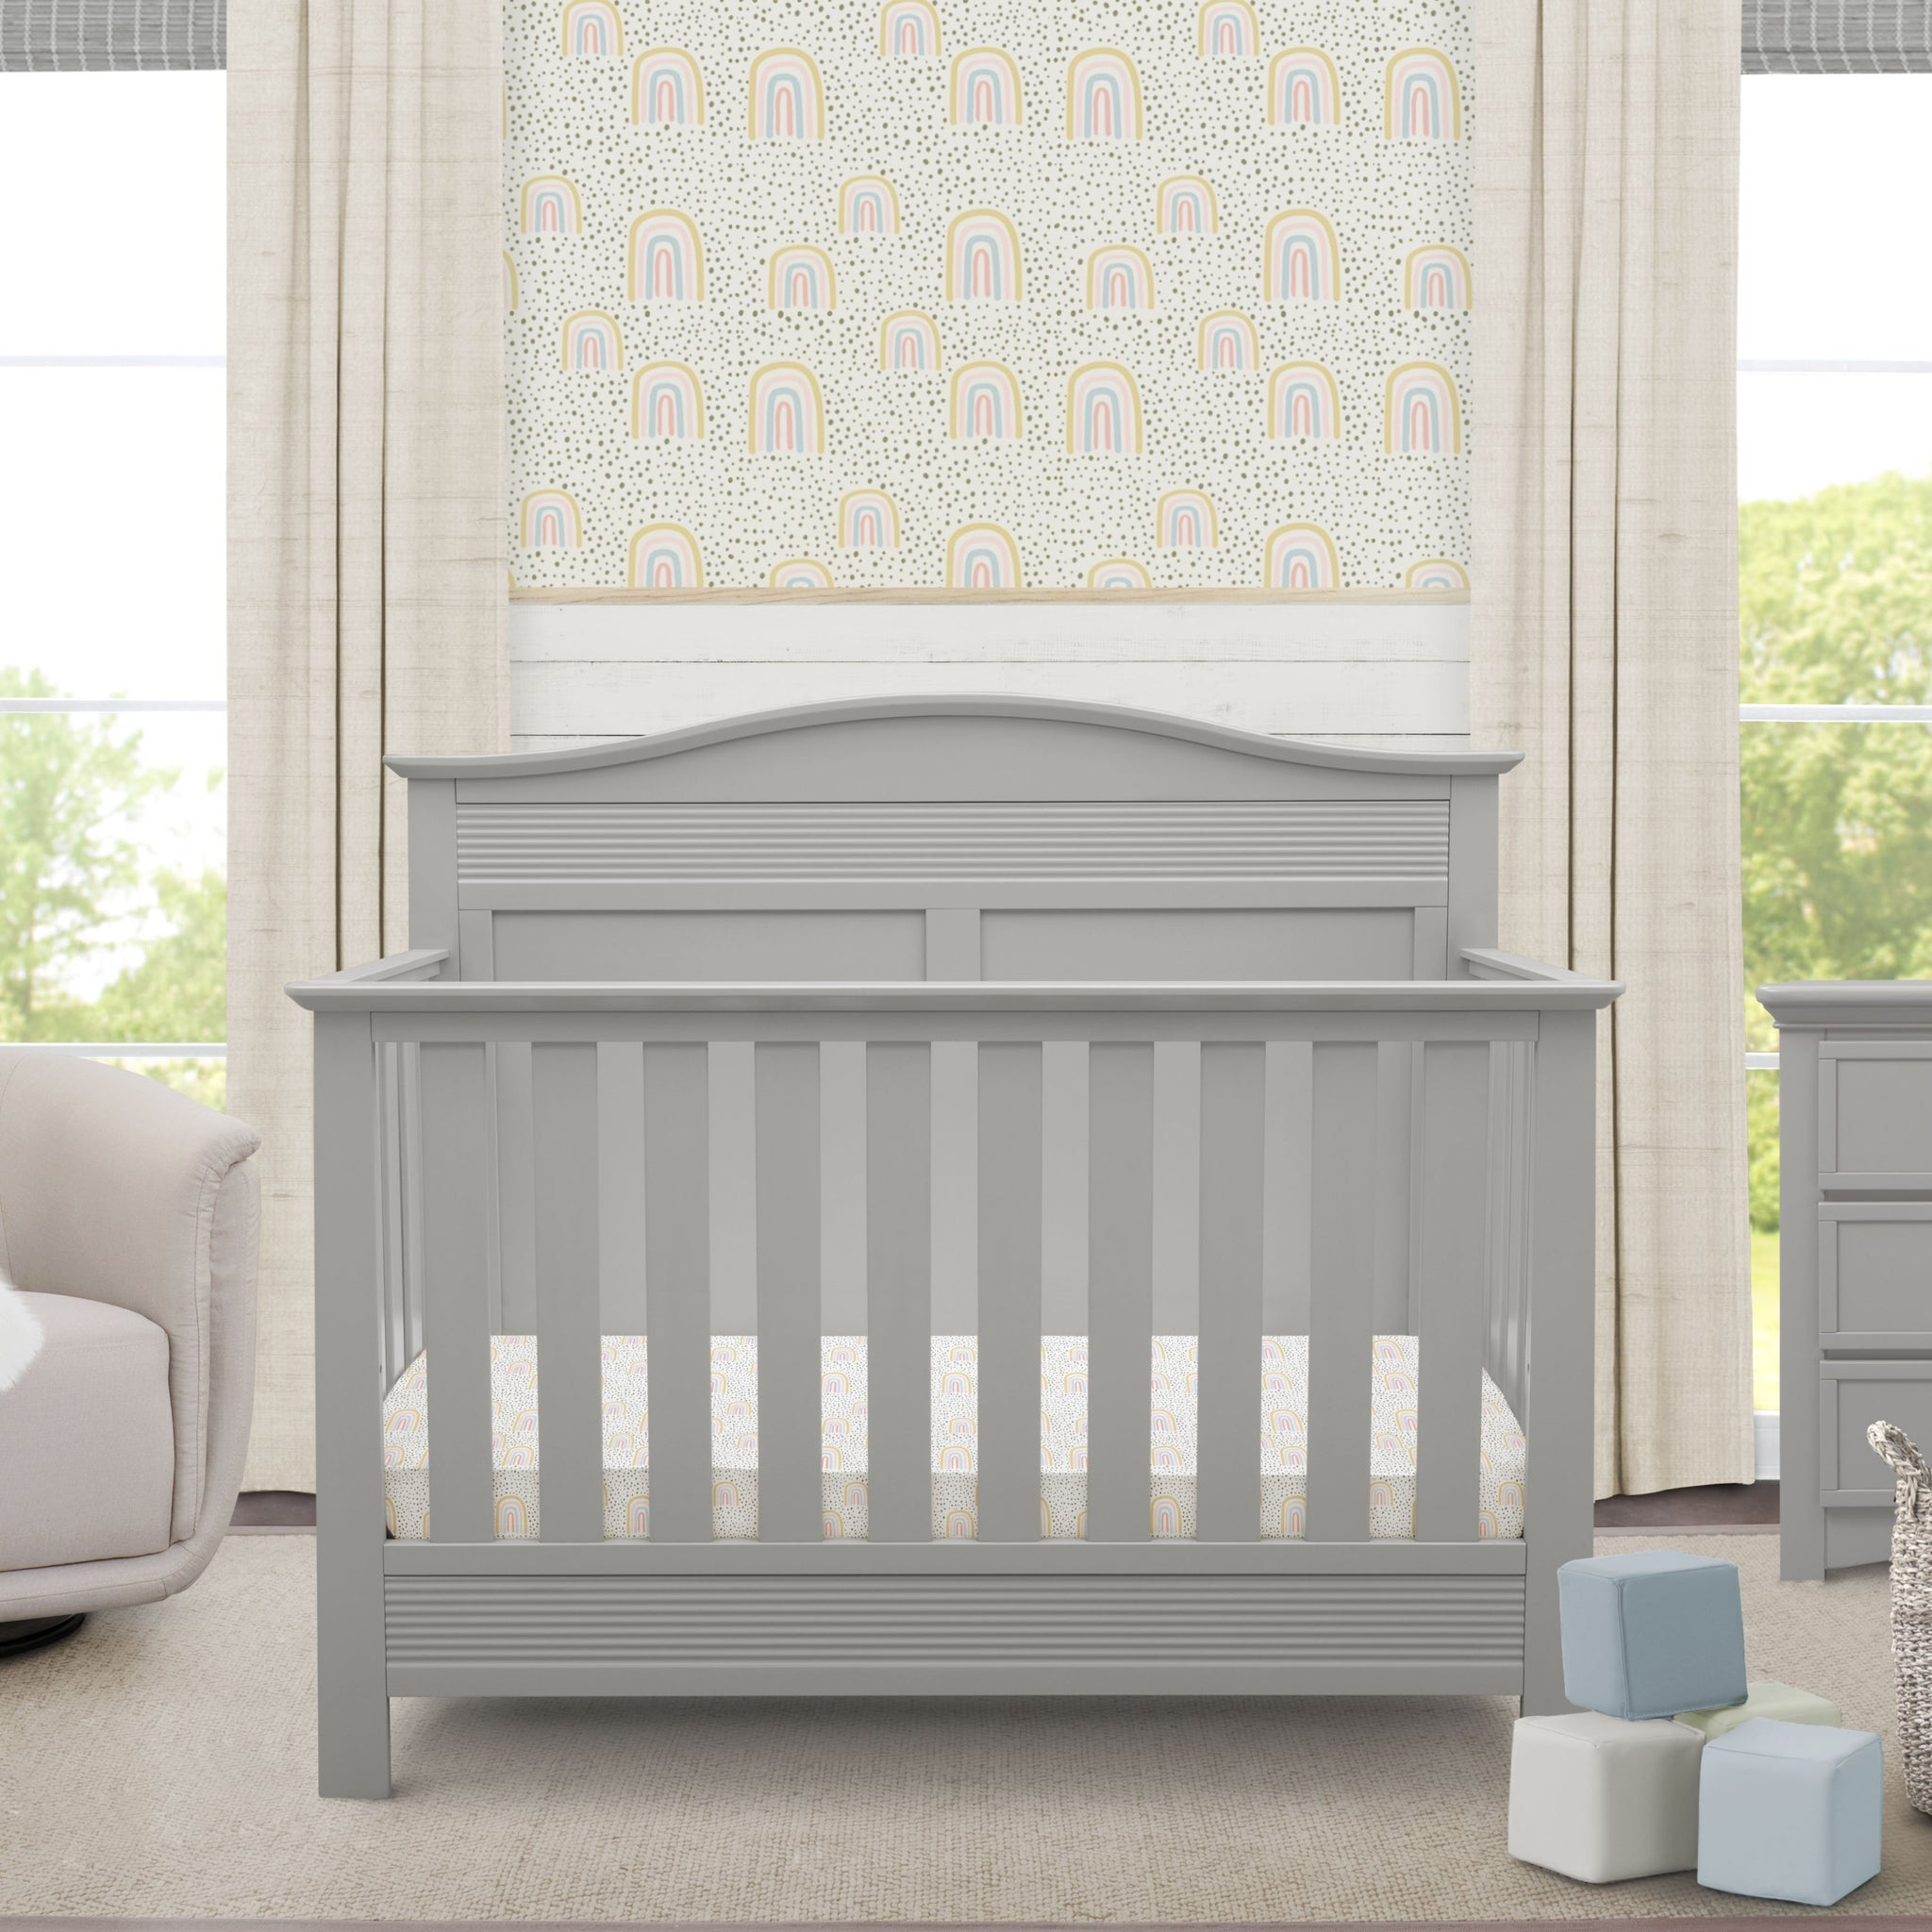 Barrett 4-in-1 Convertible Crib